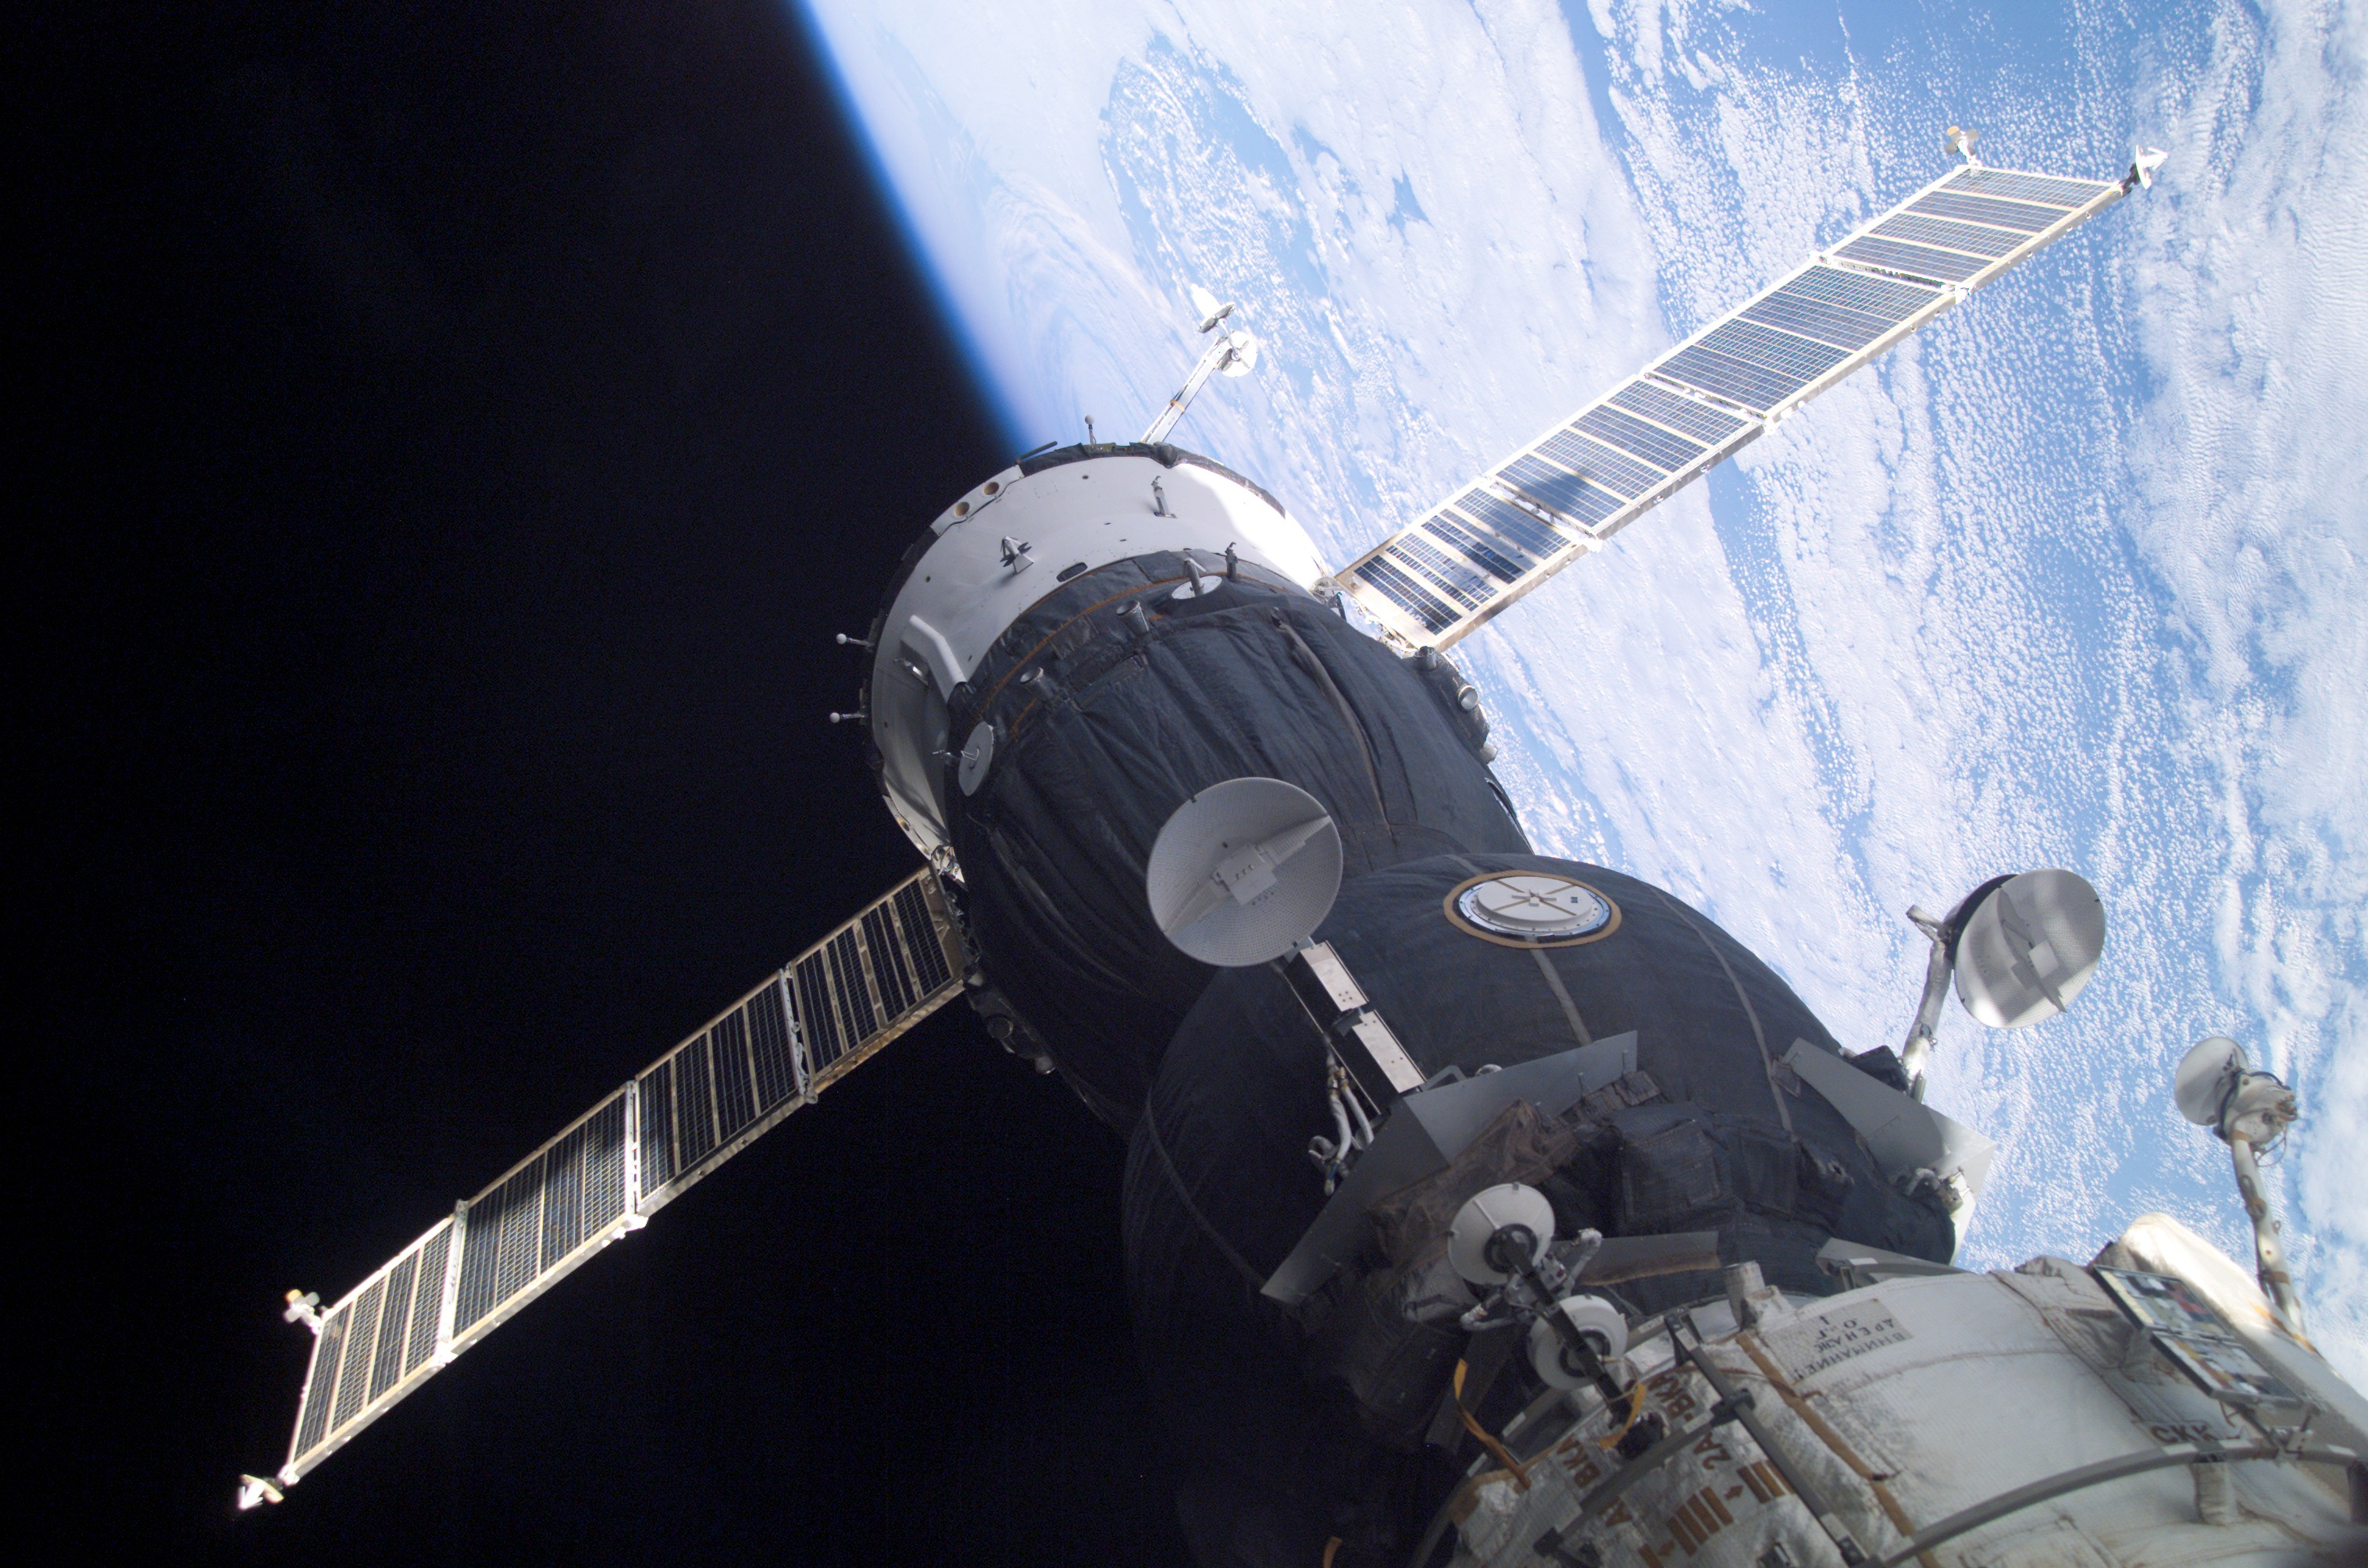 File:<b>Soyuz TMA</b>-<b>1</b> at the ISS.jpg - Wikimedia Commons